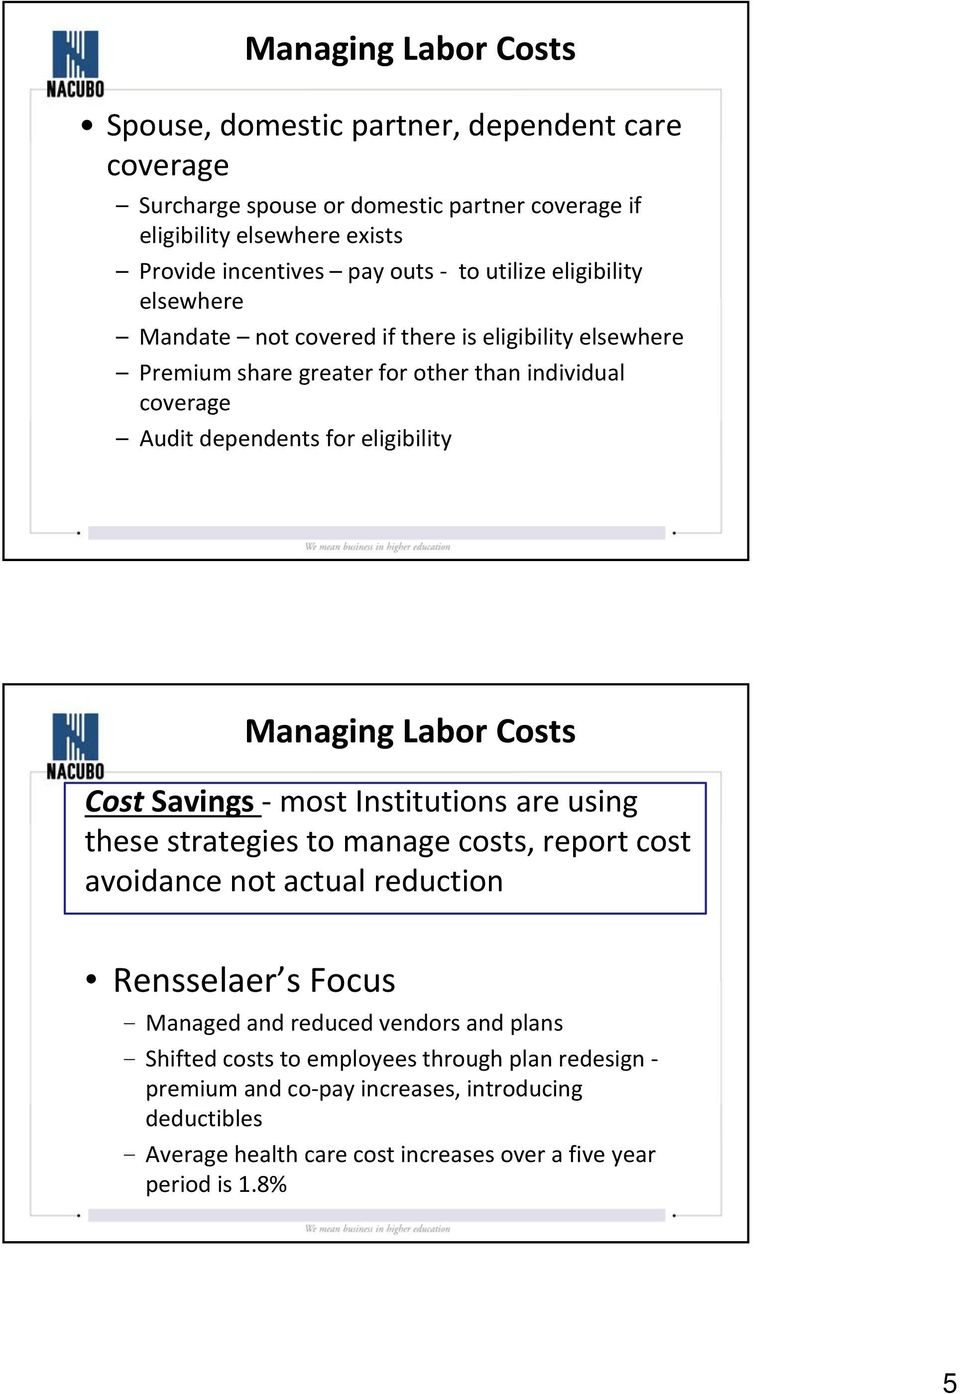 Managing Labor Costs Cost Savings most Institutions are using these strategies to manage costs, report cost avoidance not actual reduction Rensselaer s Focus - Managed and reduced